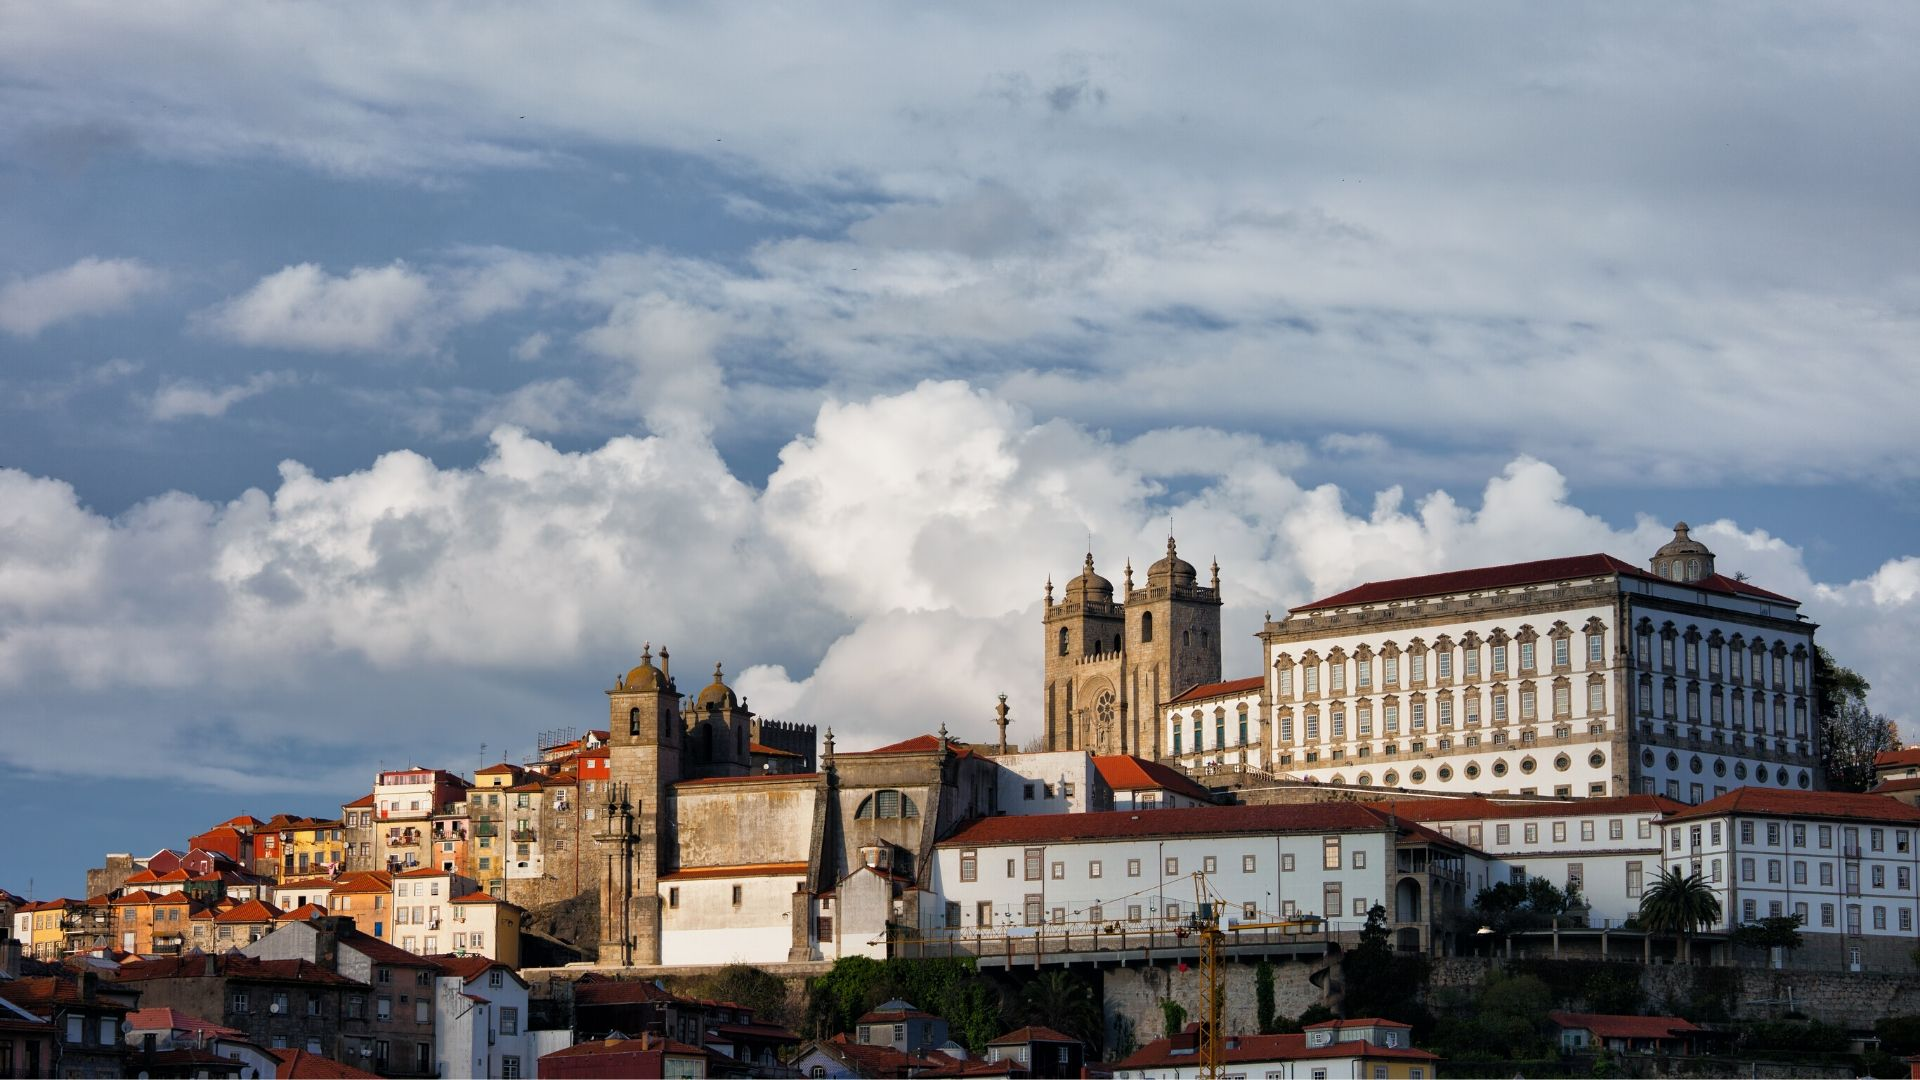 Skyline of Porto's Old Town